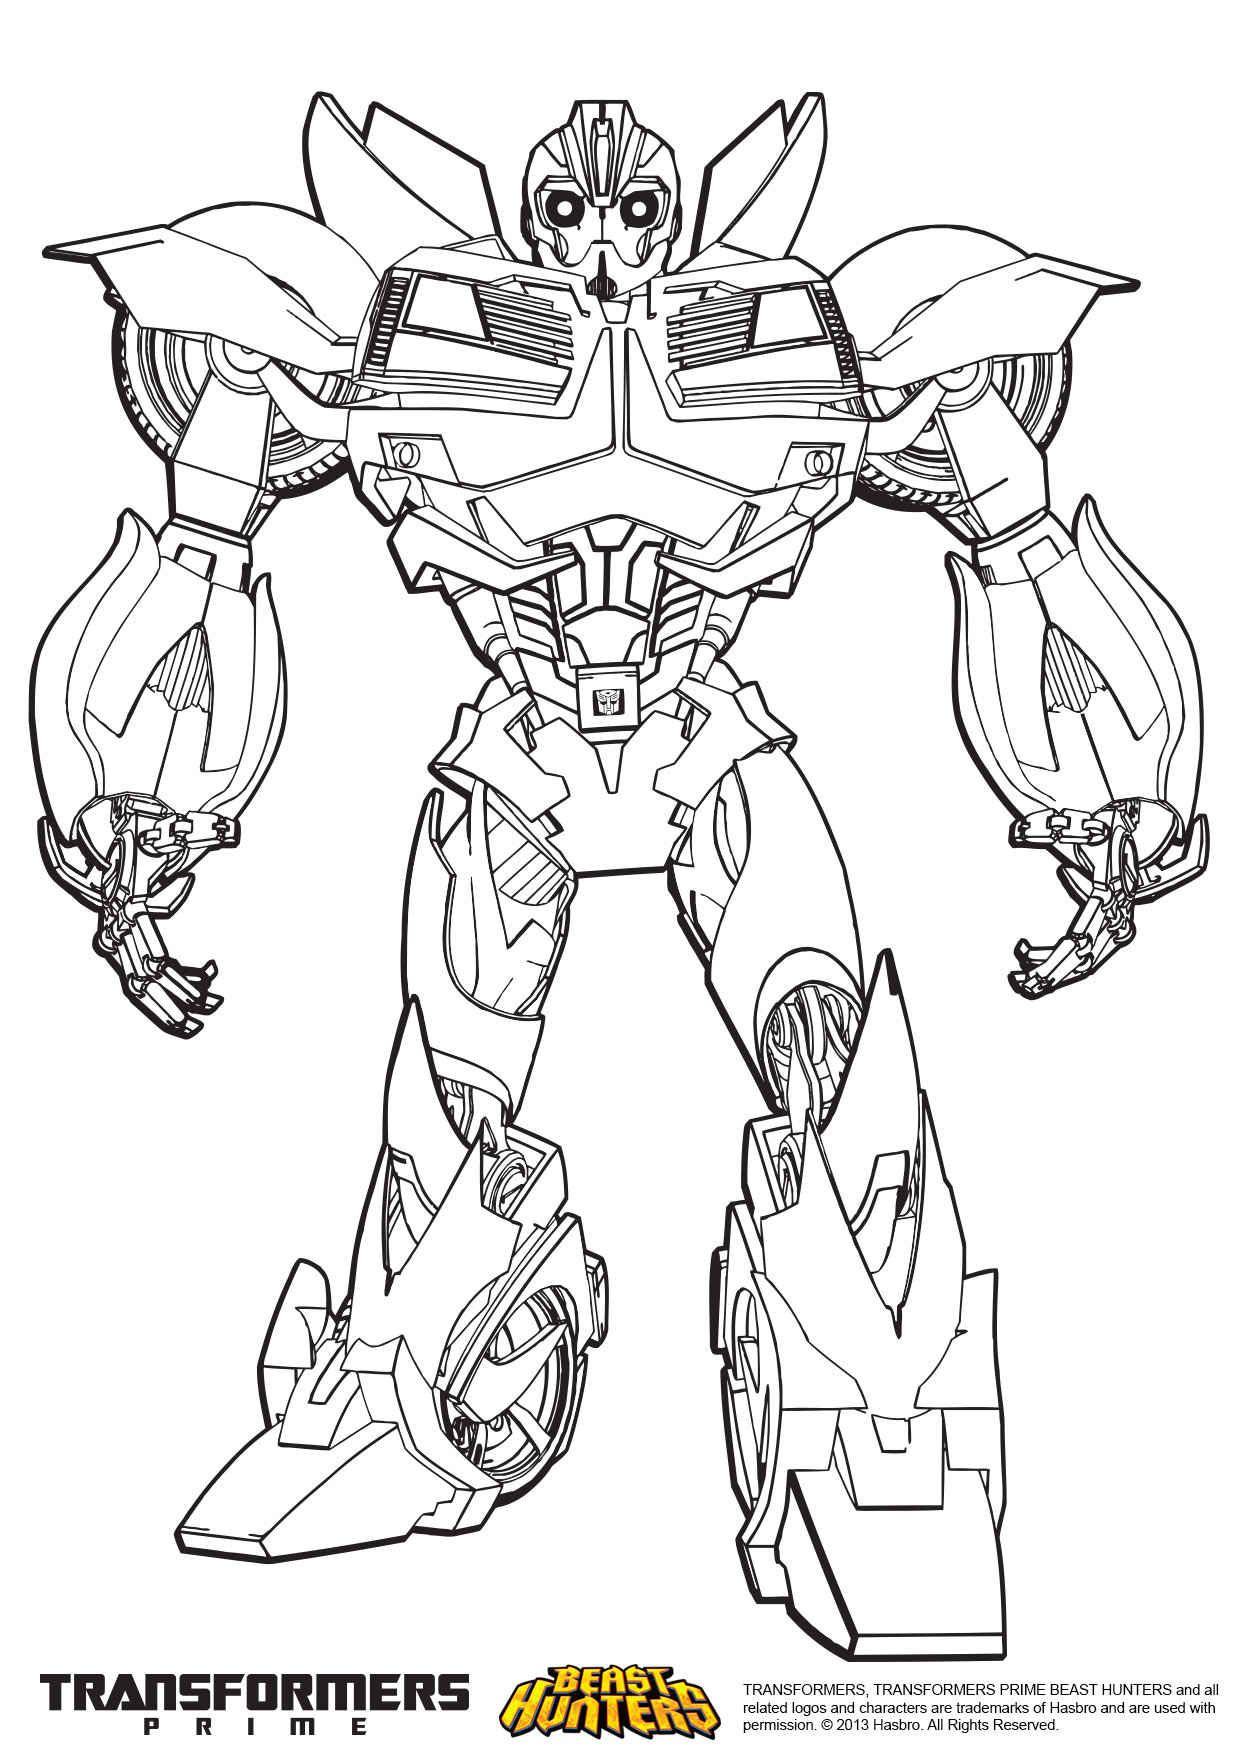 Pin By Jayne Newton On Transformers Bumblebee Coloring Pages Bee Coloring Pages Superhero Coloring Pages Transformers Coloring Pages